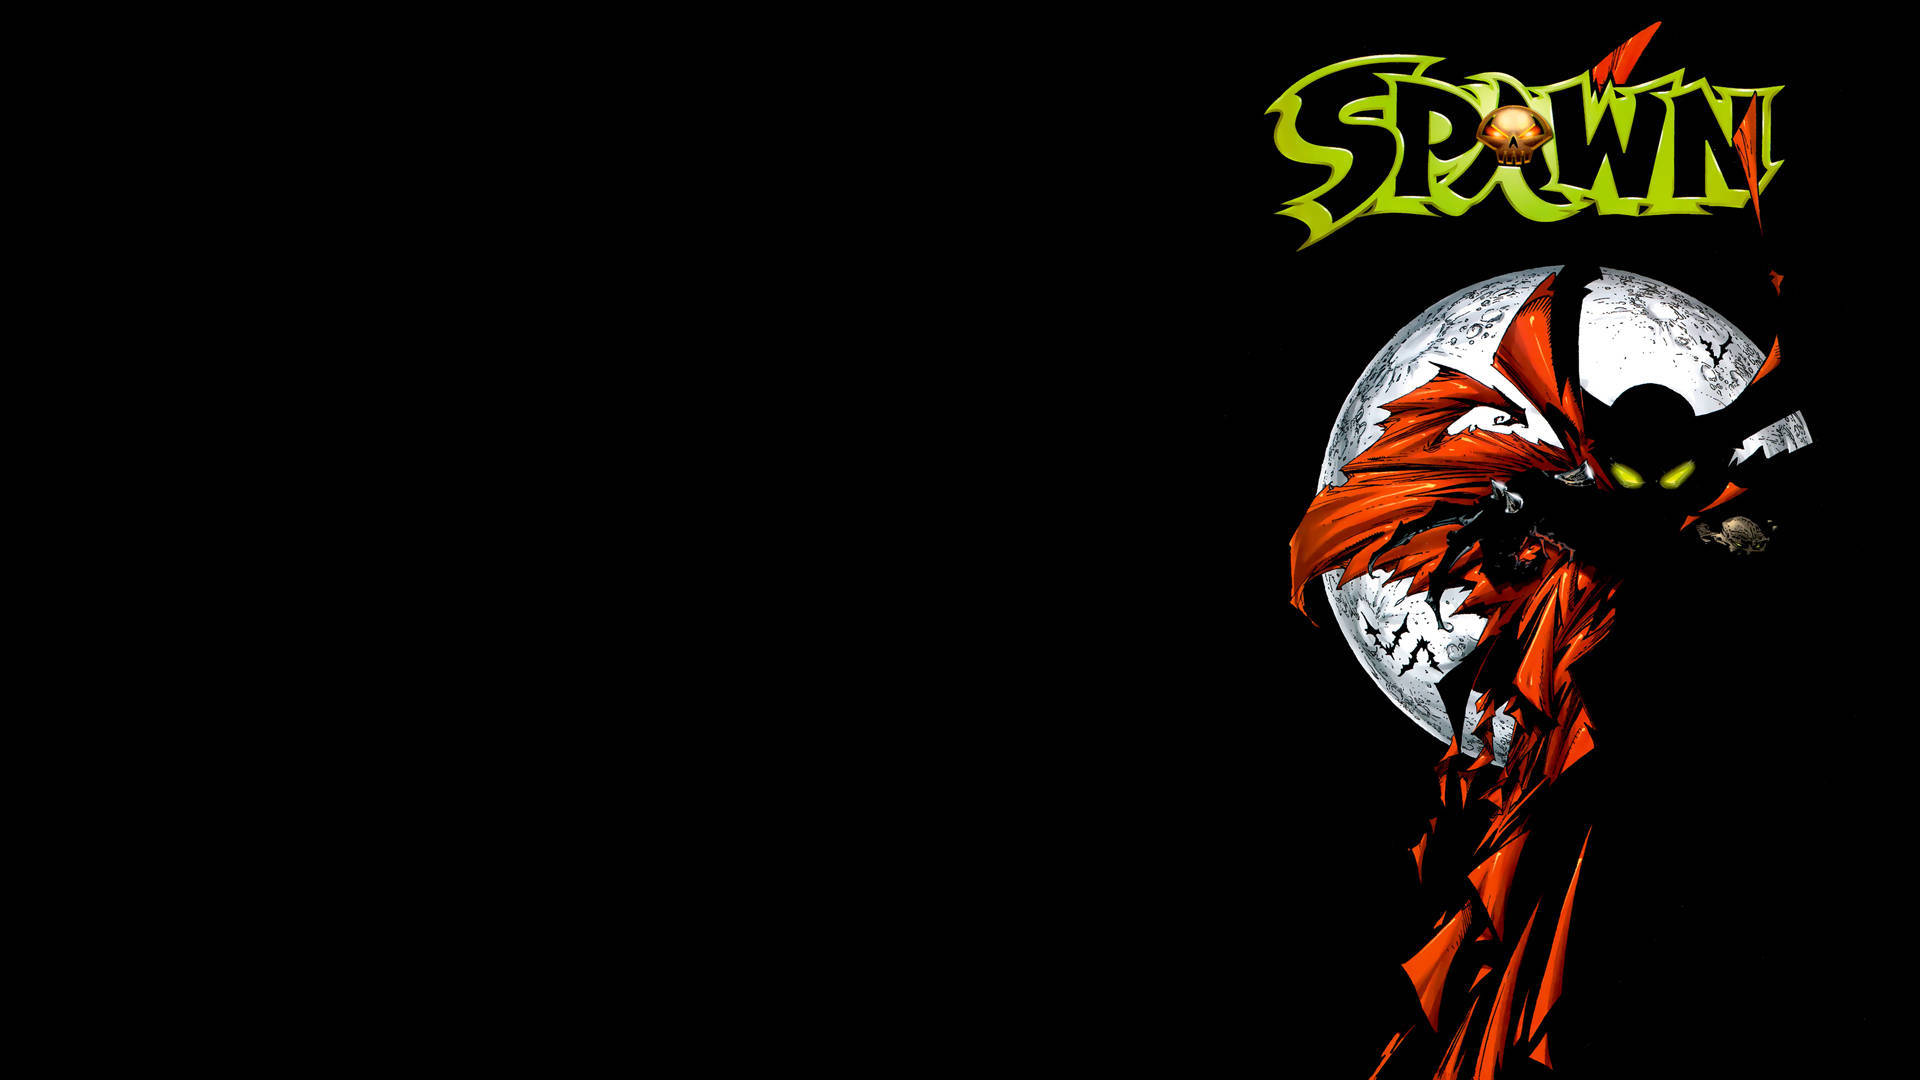 Fondos de Pantalla Wallpapers Gratis: Spawn - HD Wallpaper